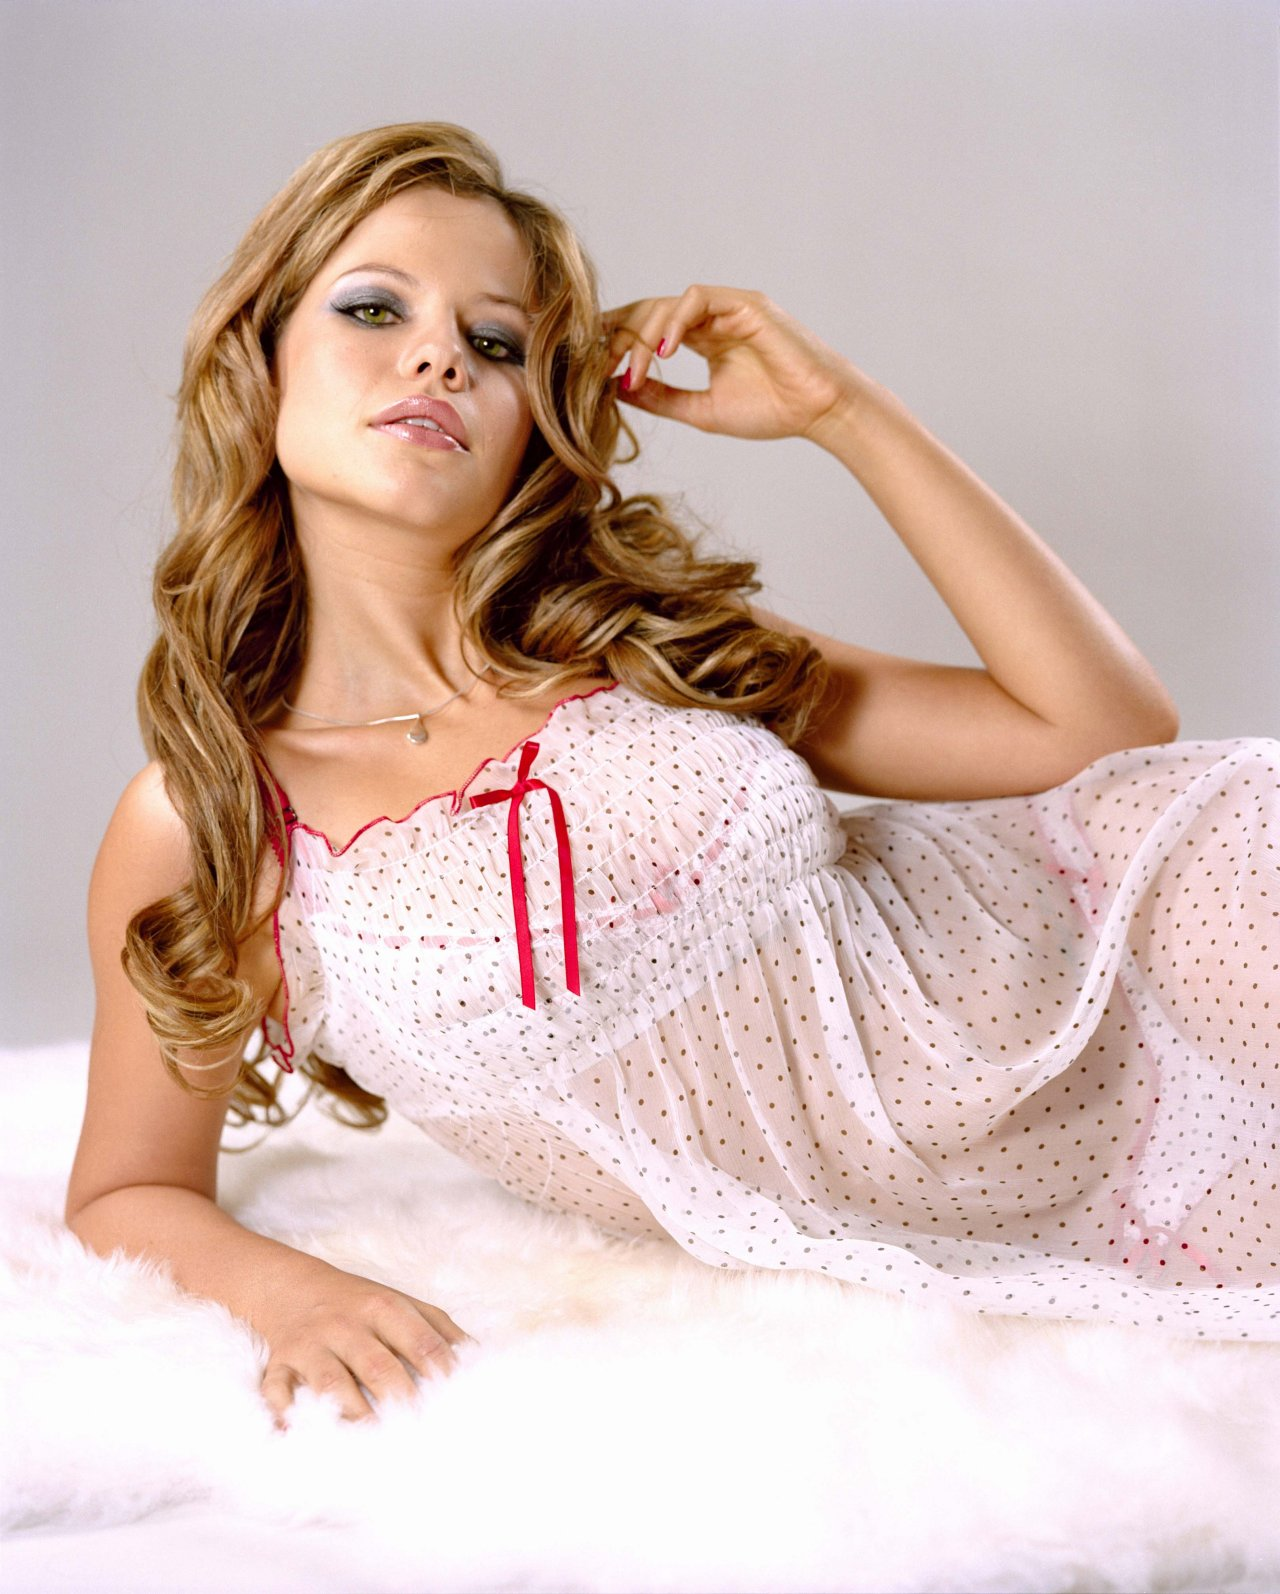 Tammin Sursok leaked wallpapers